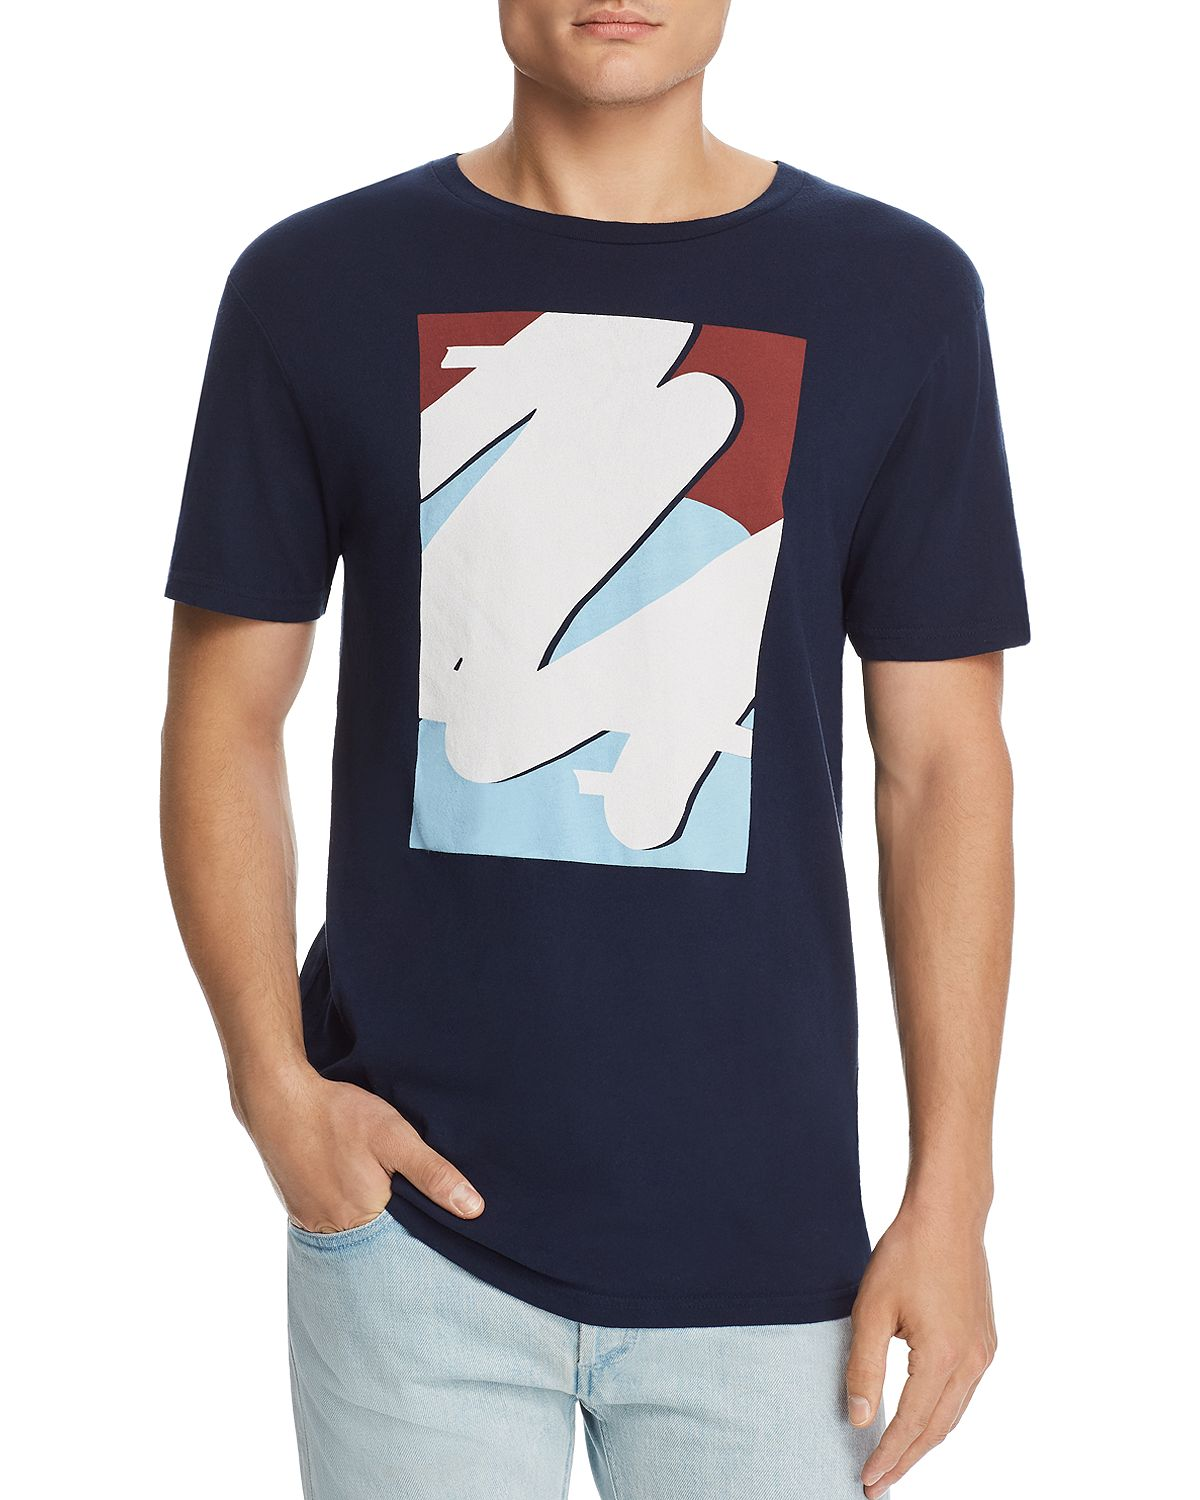 Vesitge Visual Arts Graphic Tee